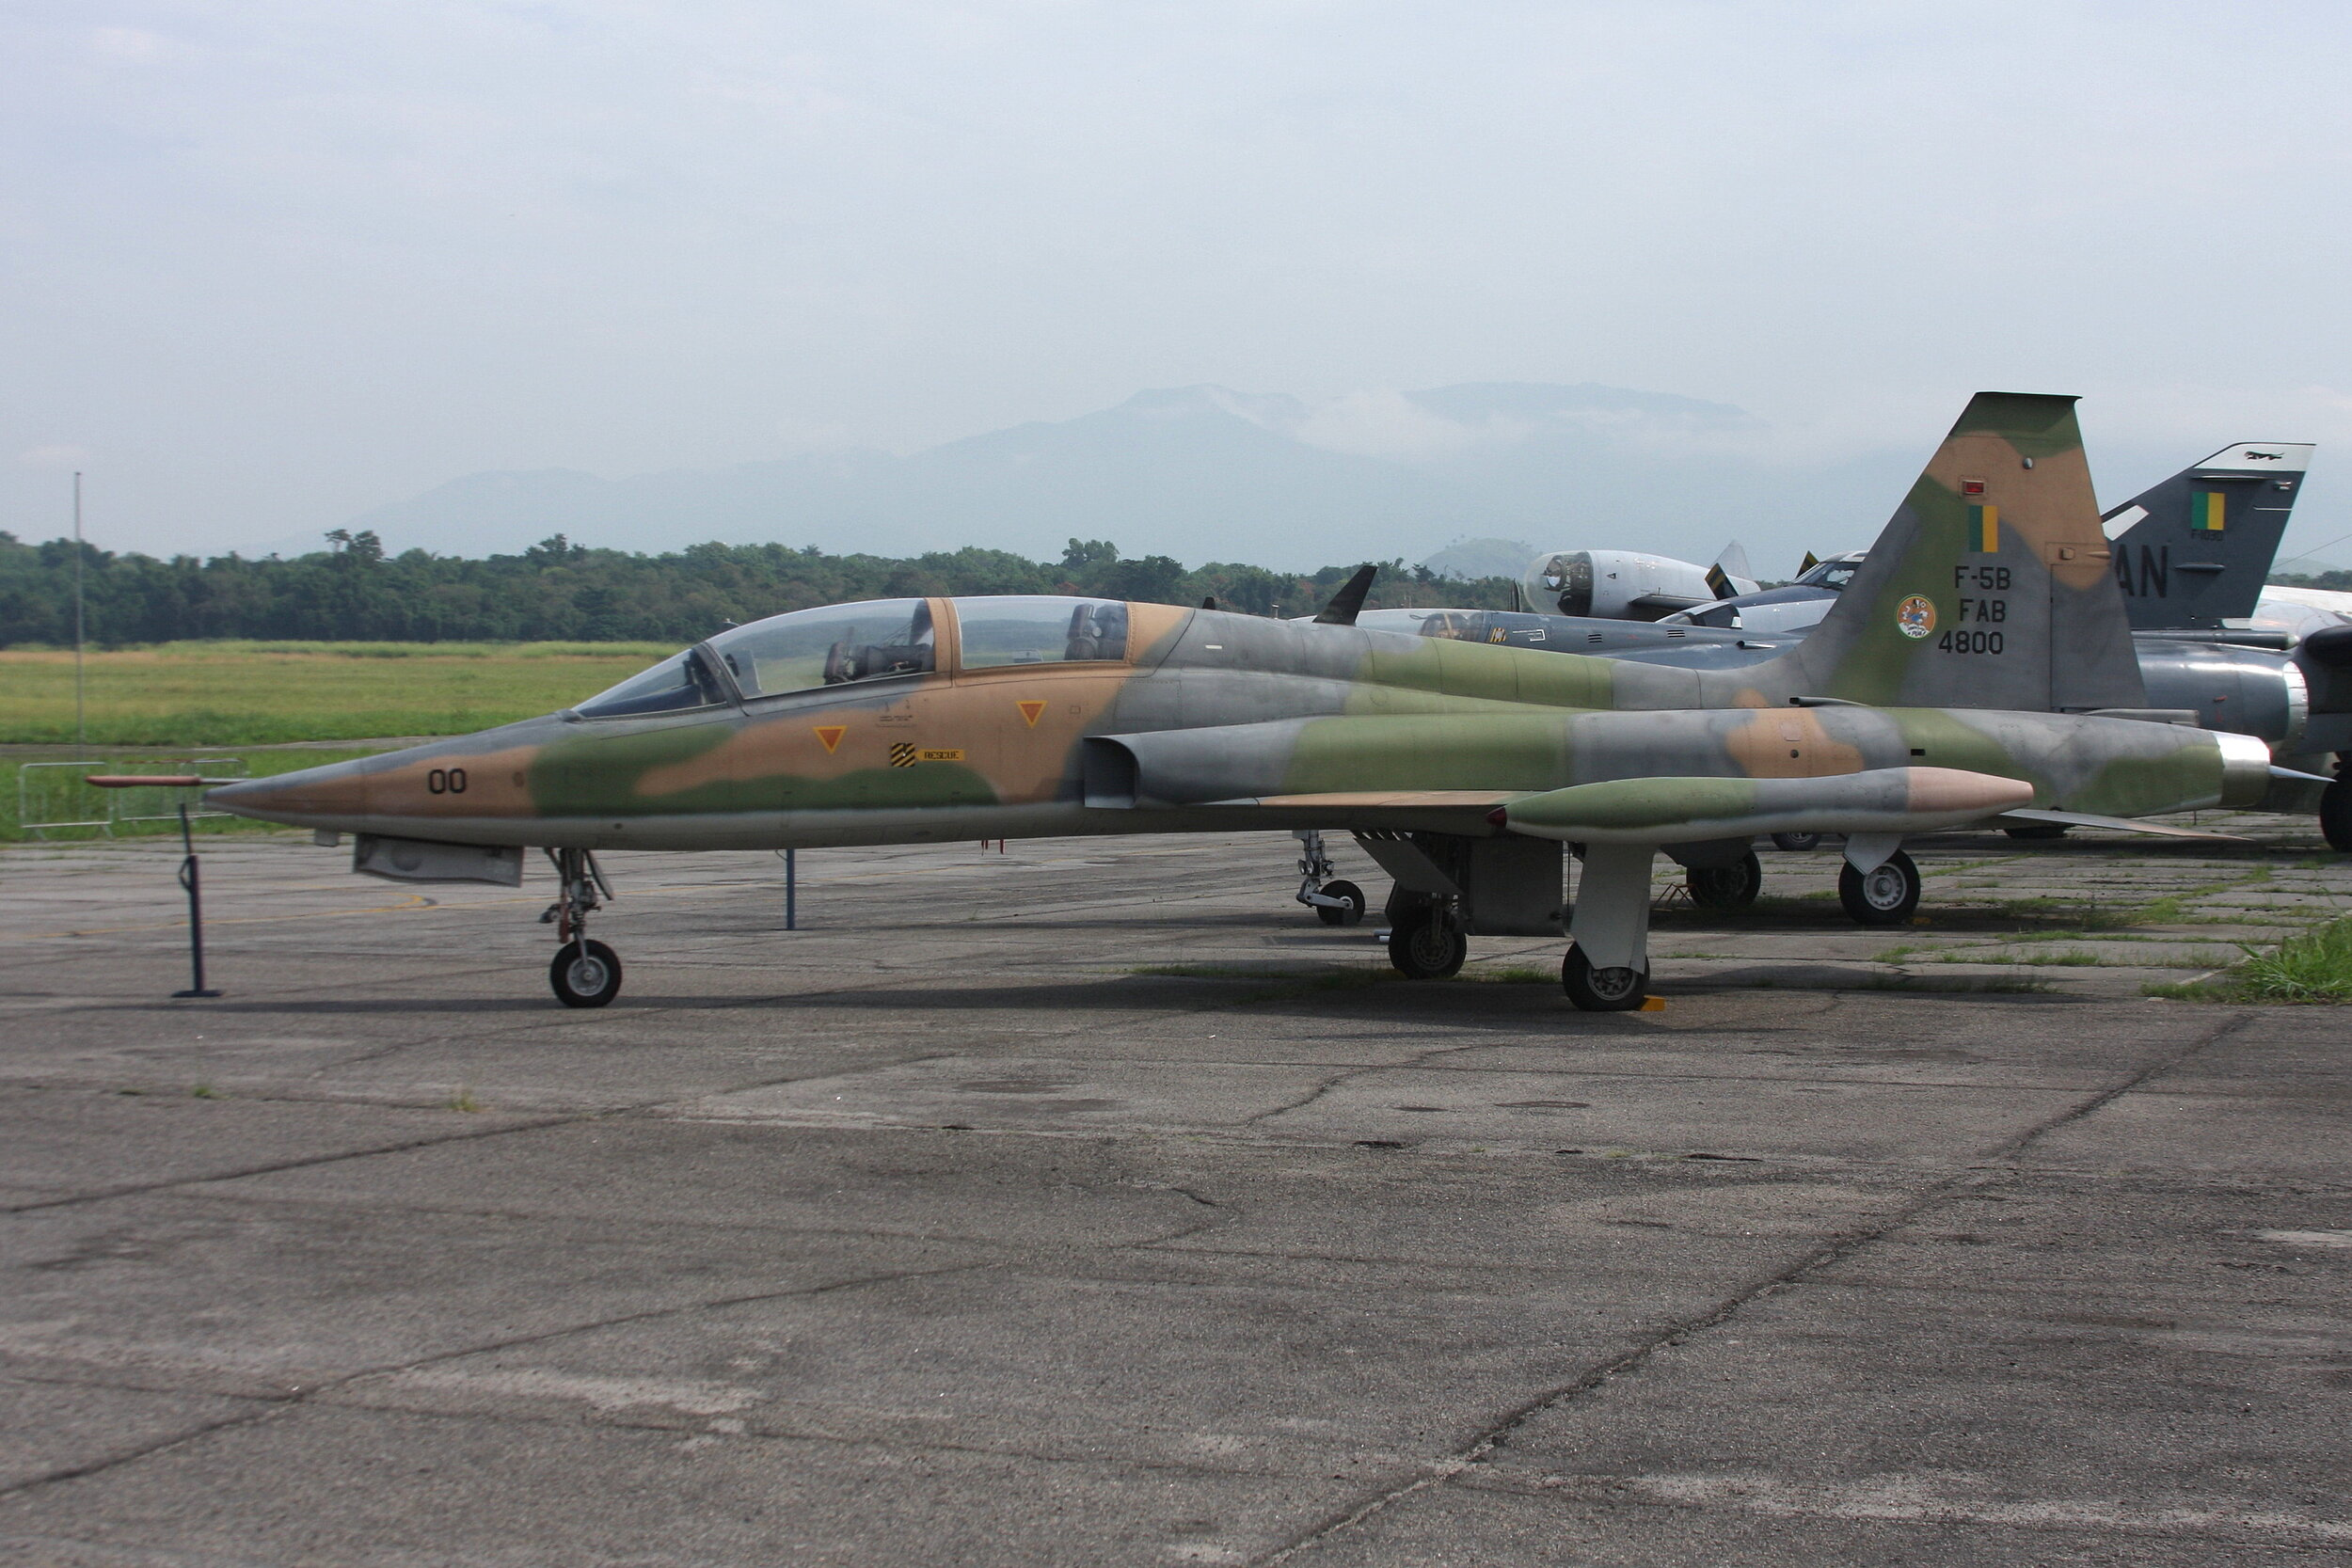 FAB4800 Brasil Air Force Northrop F5-B Freedom Fighter on display at Museu Aeroespacial Rio De Janeiro taken 2nd May 2019 by John Wood